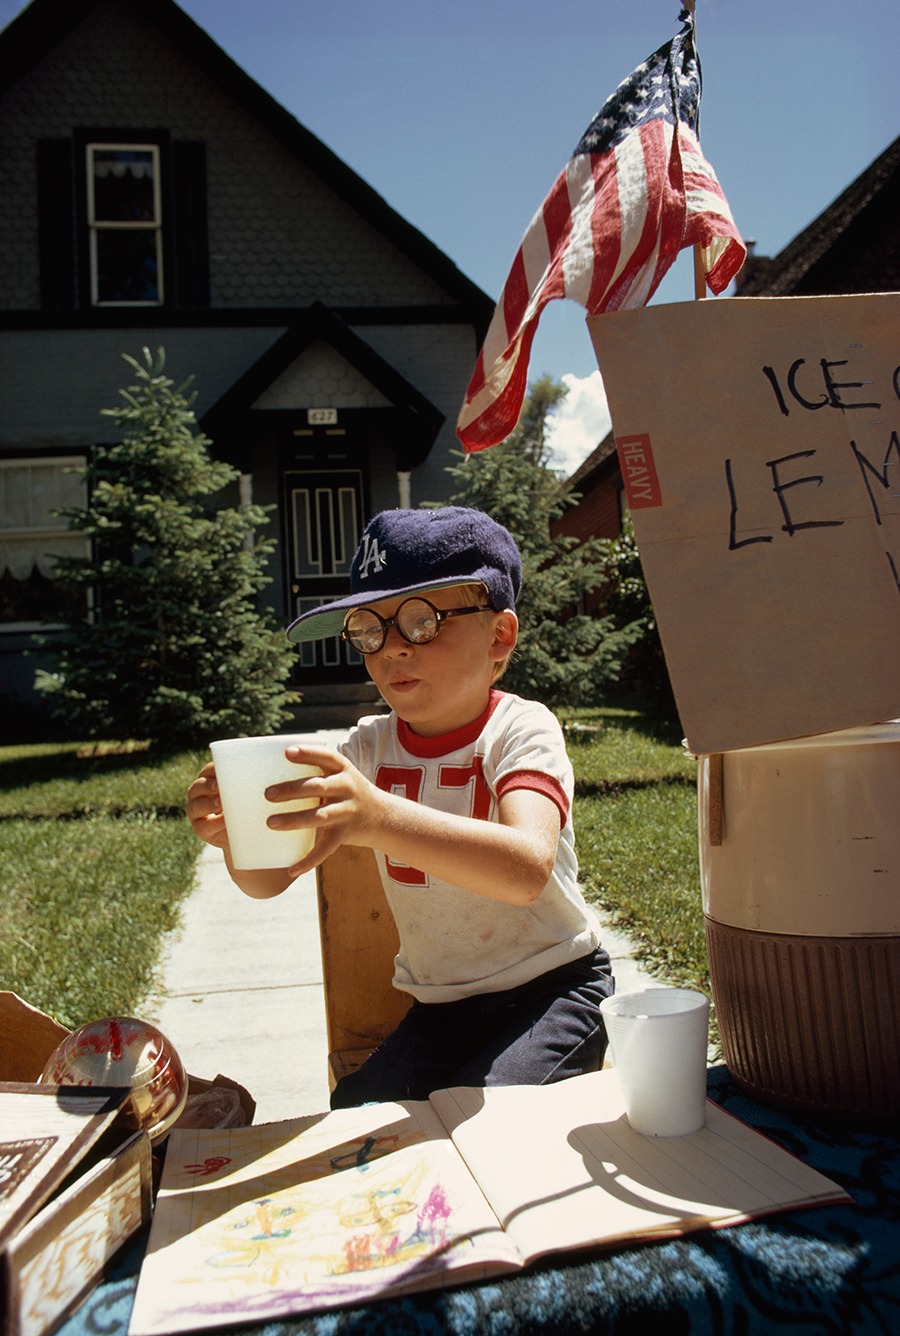 natgeofound :     A boy sells lemonade from his front yard stand on Main Street in Aspen, Colorado, 1973. Photograph by Dick Durrance II, National Geographic Creative